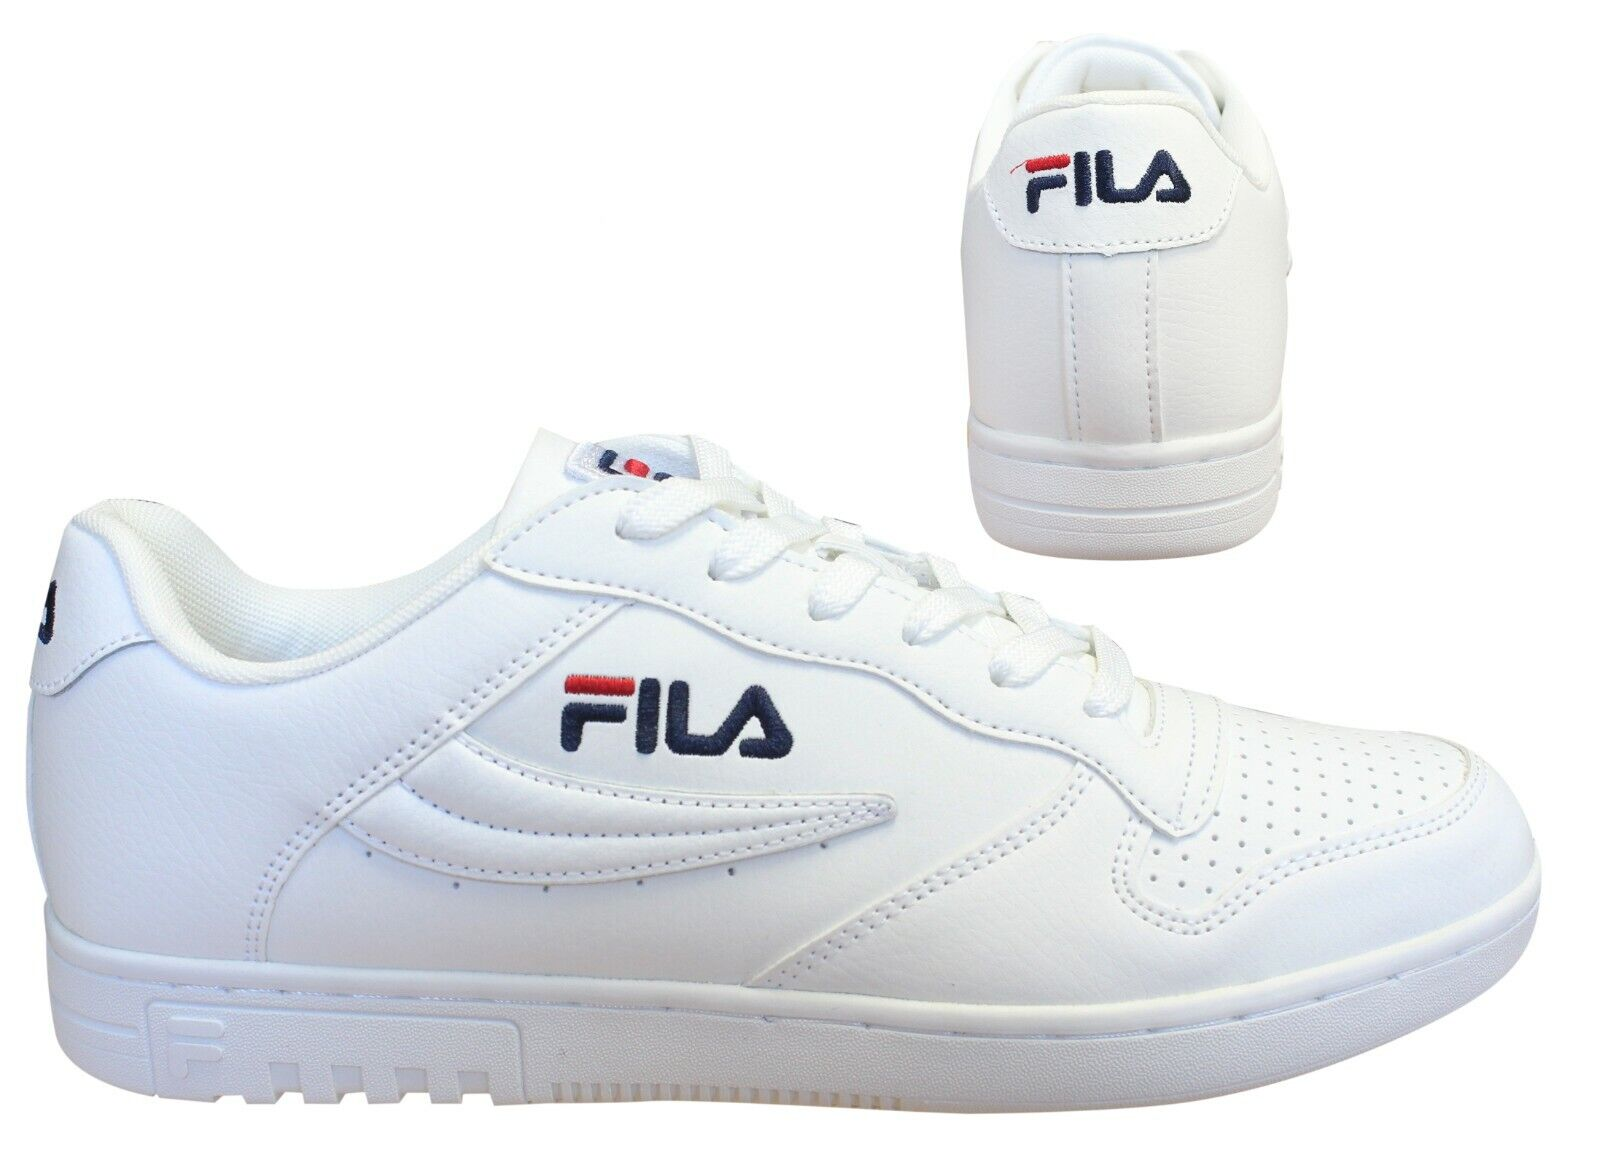 Details about Fila FX 100 Low White Lace Up Casual Sports Mens Trainers 1010260 1FG B0C